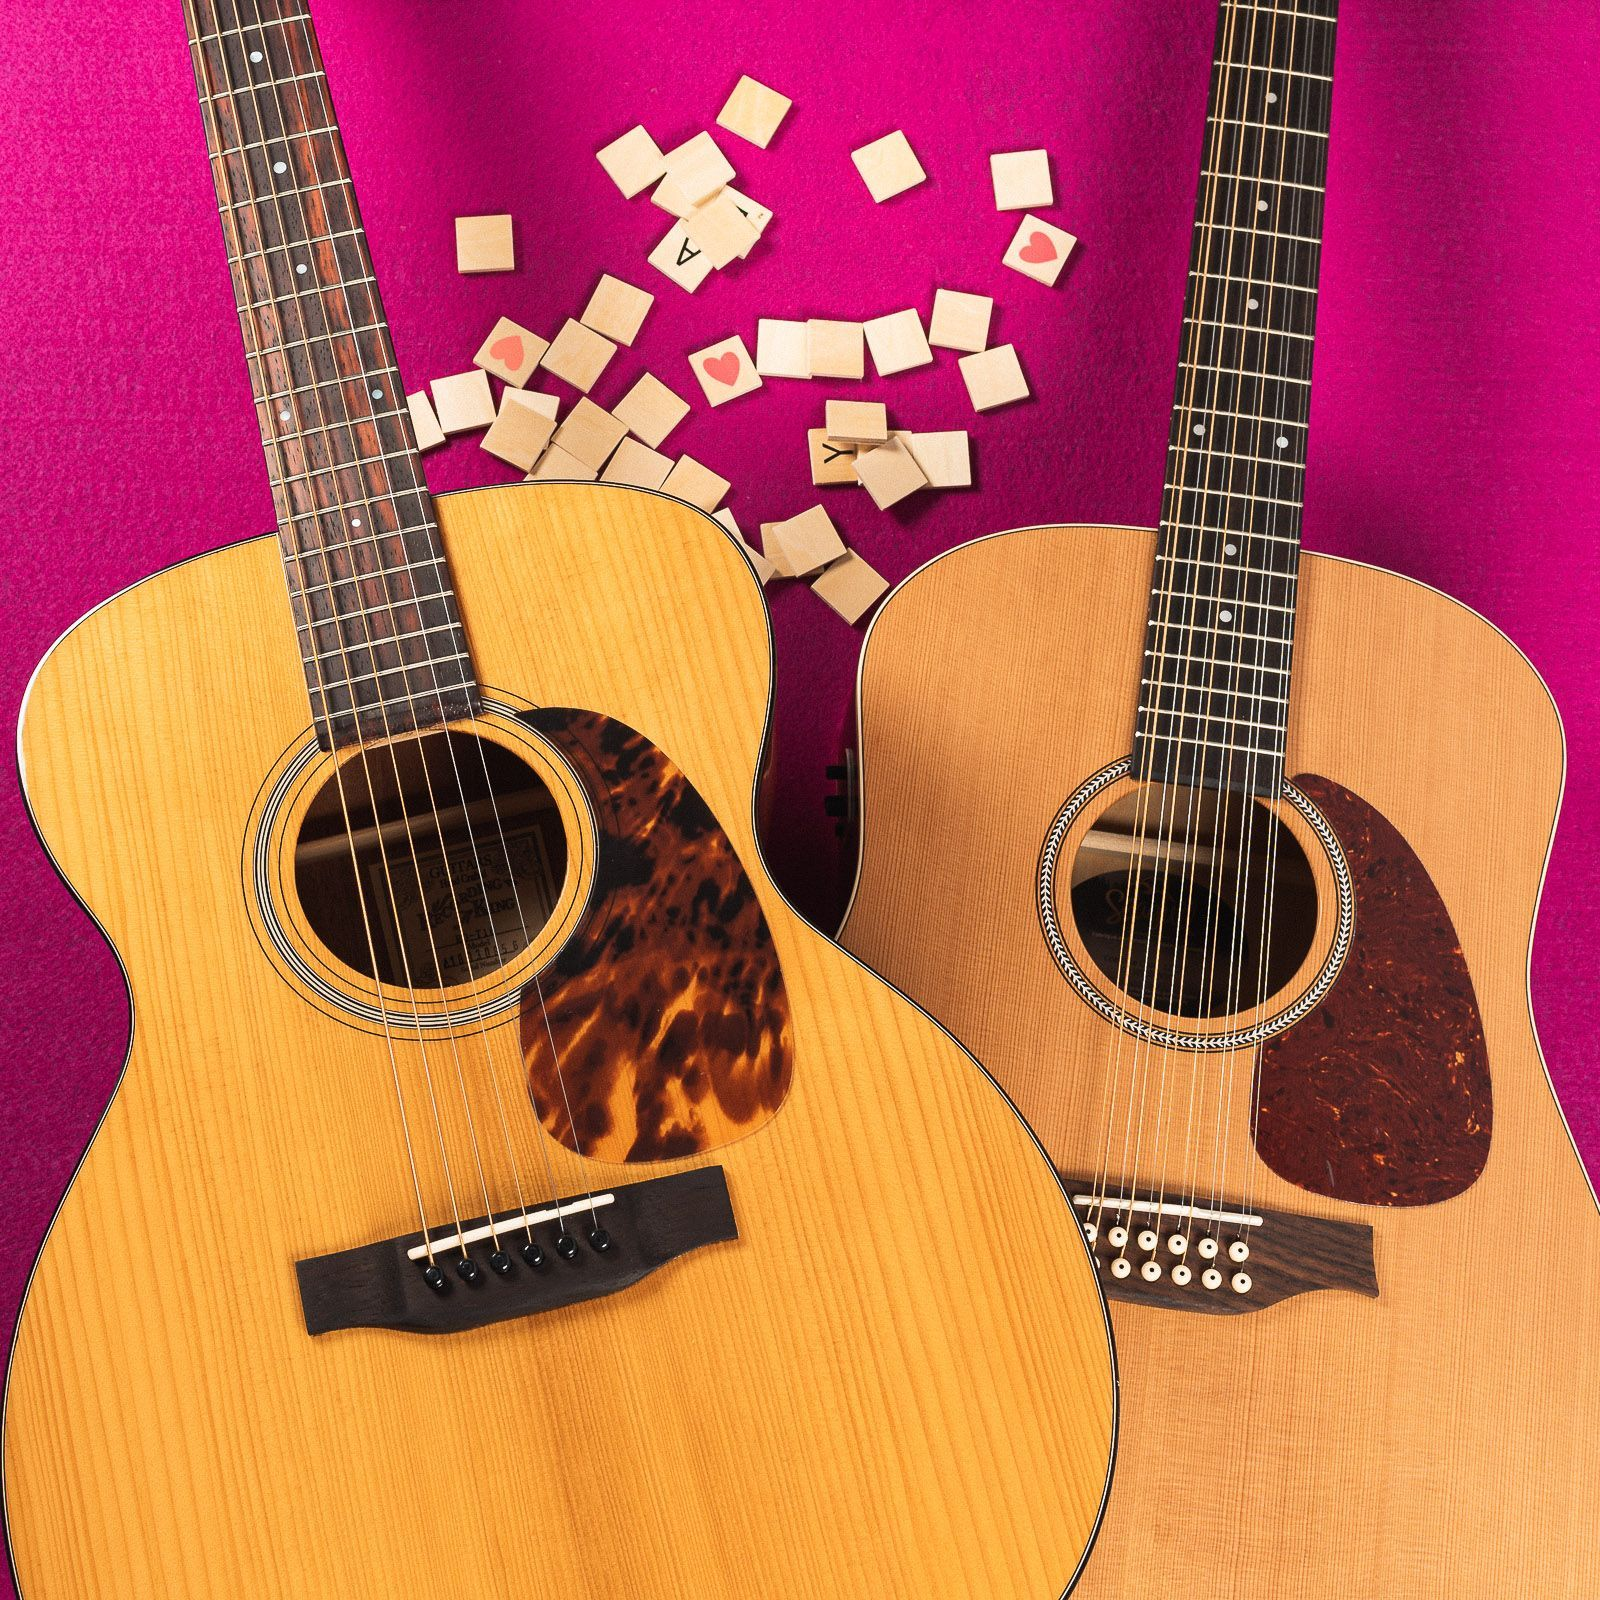 For Most Of Us The Acoustic Guitar Was Our First Love Rediscover The Joy Of Pure Tone With 15 Off New Used And V Guitar Guitar Photography Acoustic Guitar